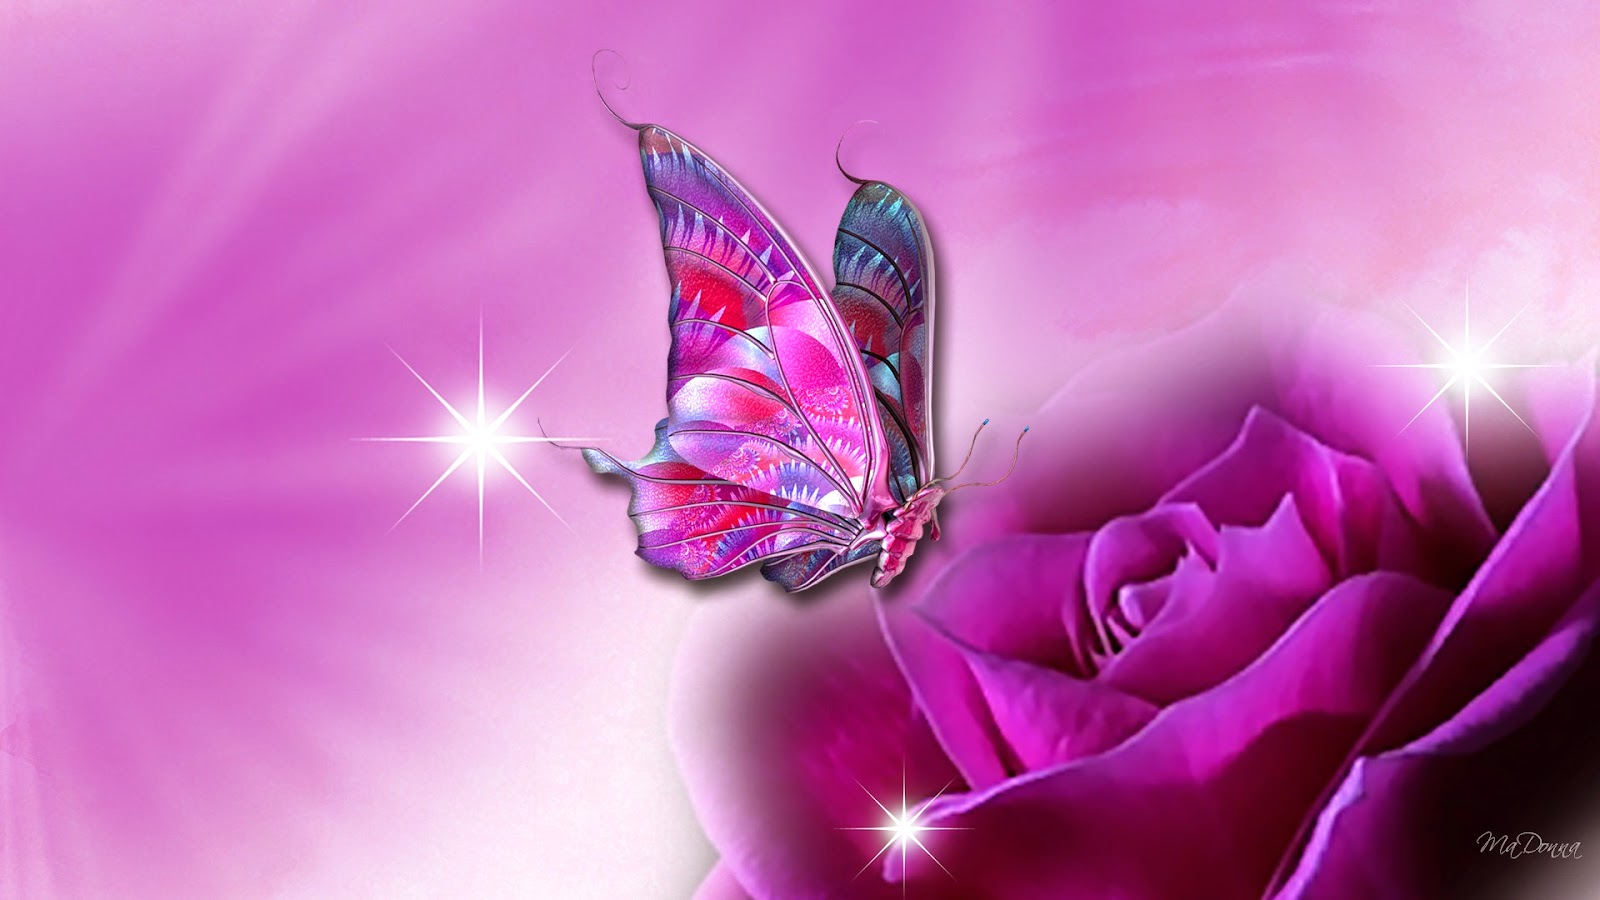 hd butterfly wallpapers free download | hd butterflies